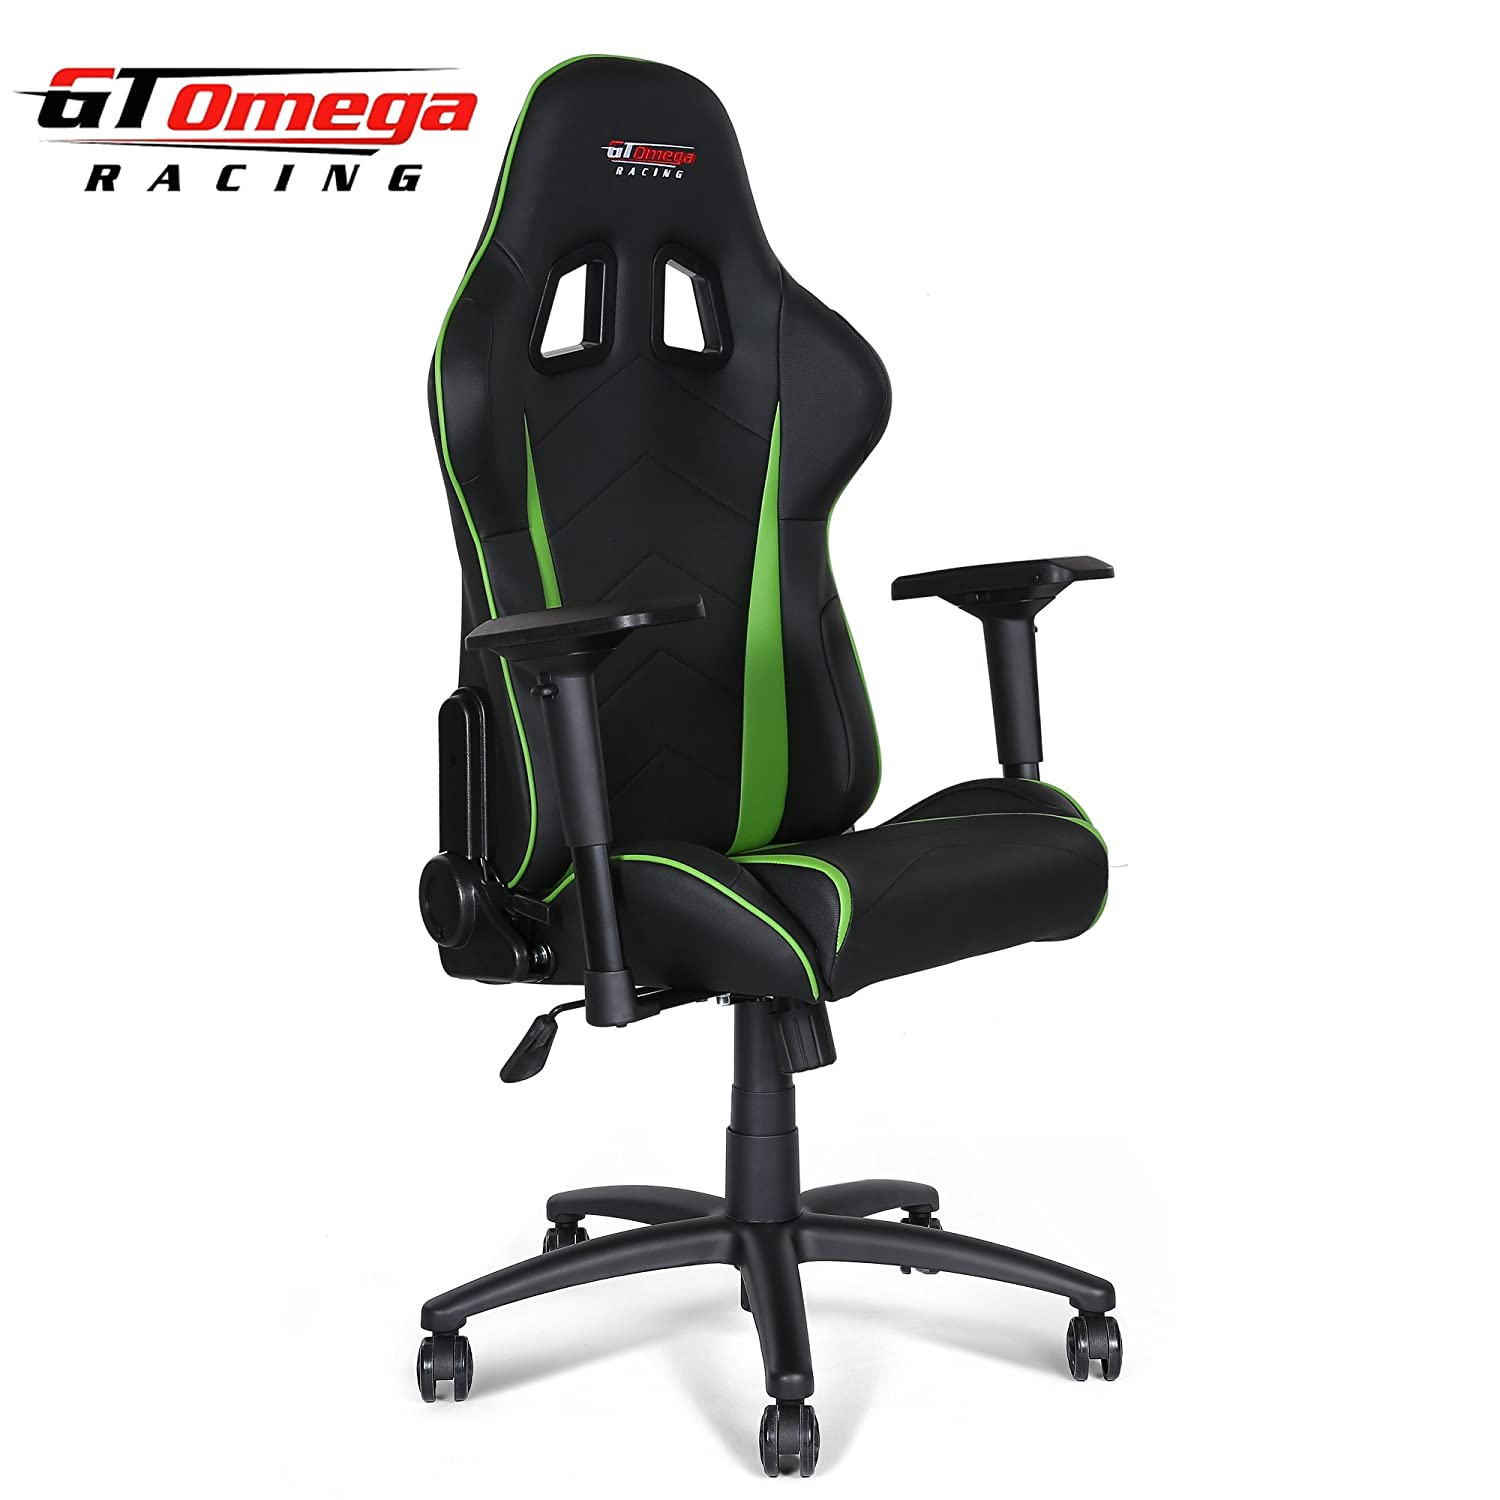 Gt Omega Pro Racing Office Chair Black Next Green Leather Amazon